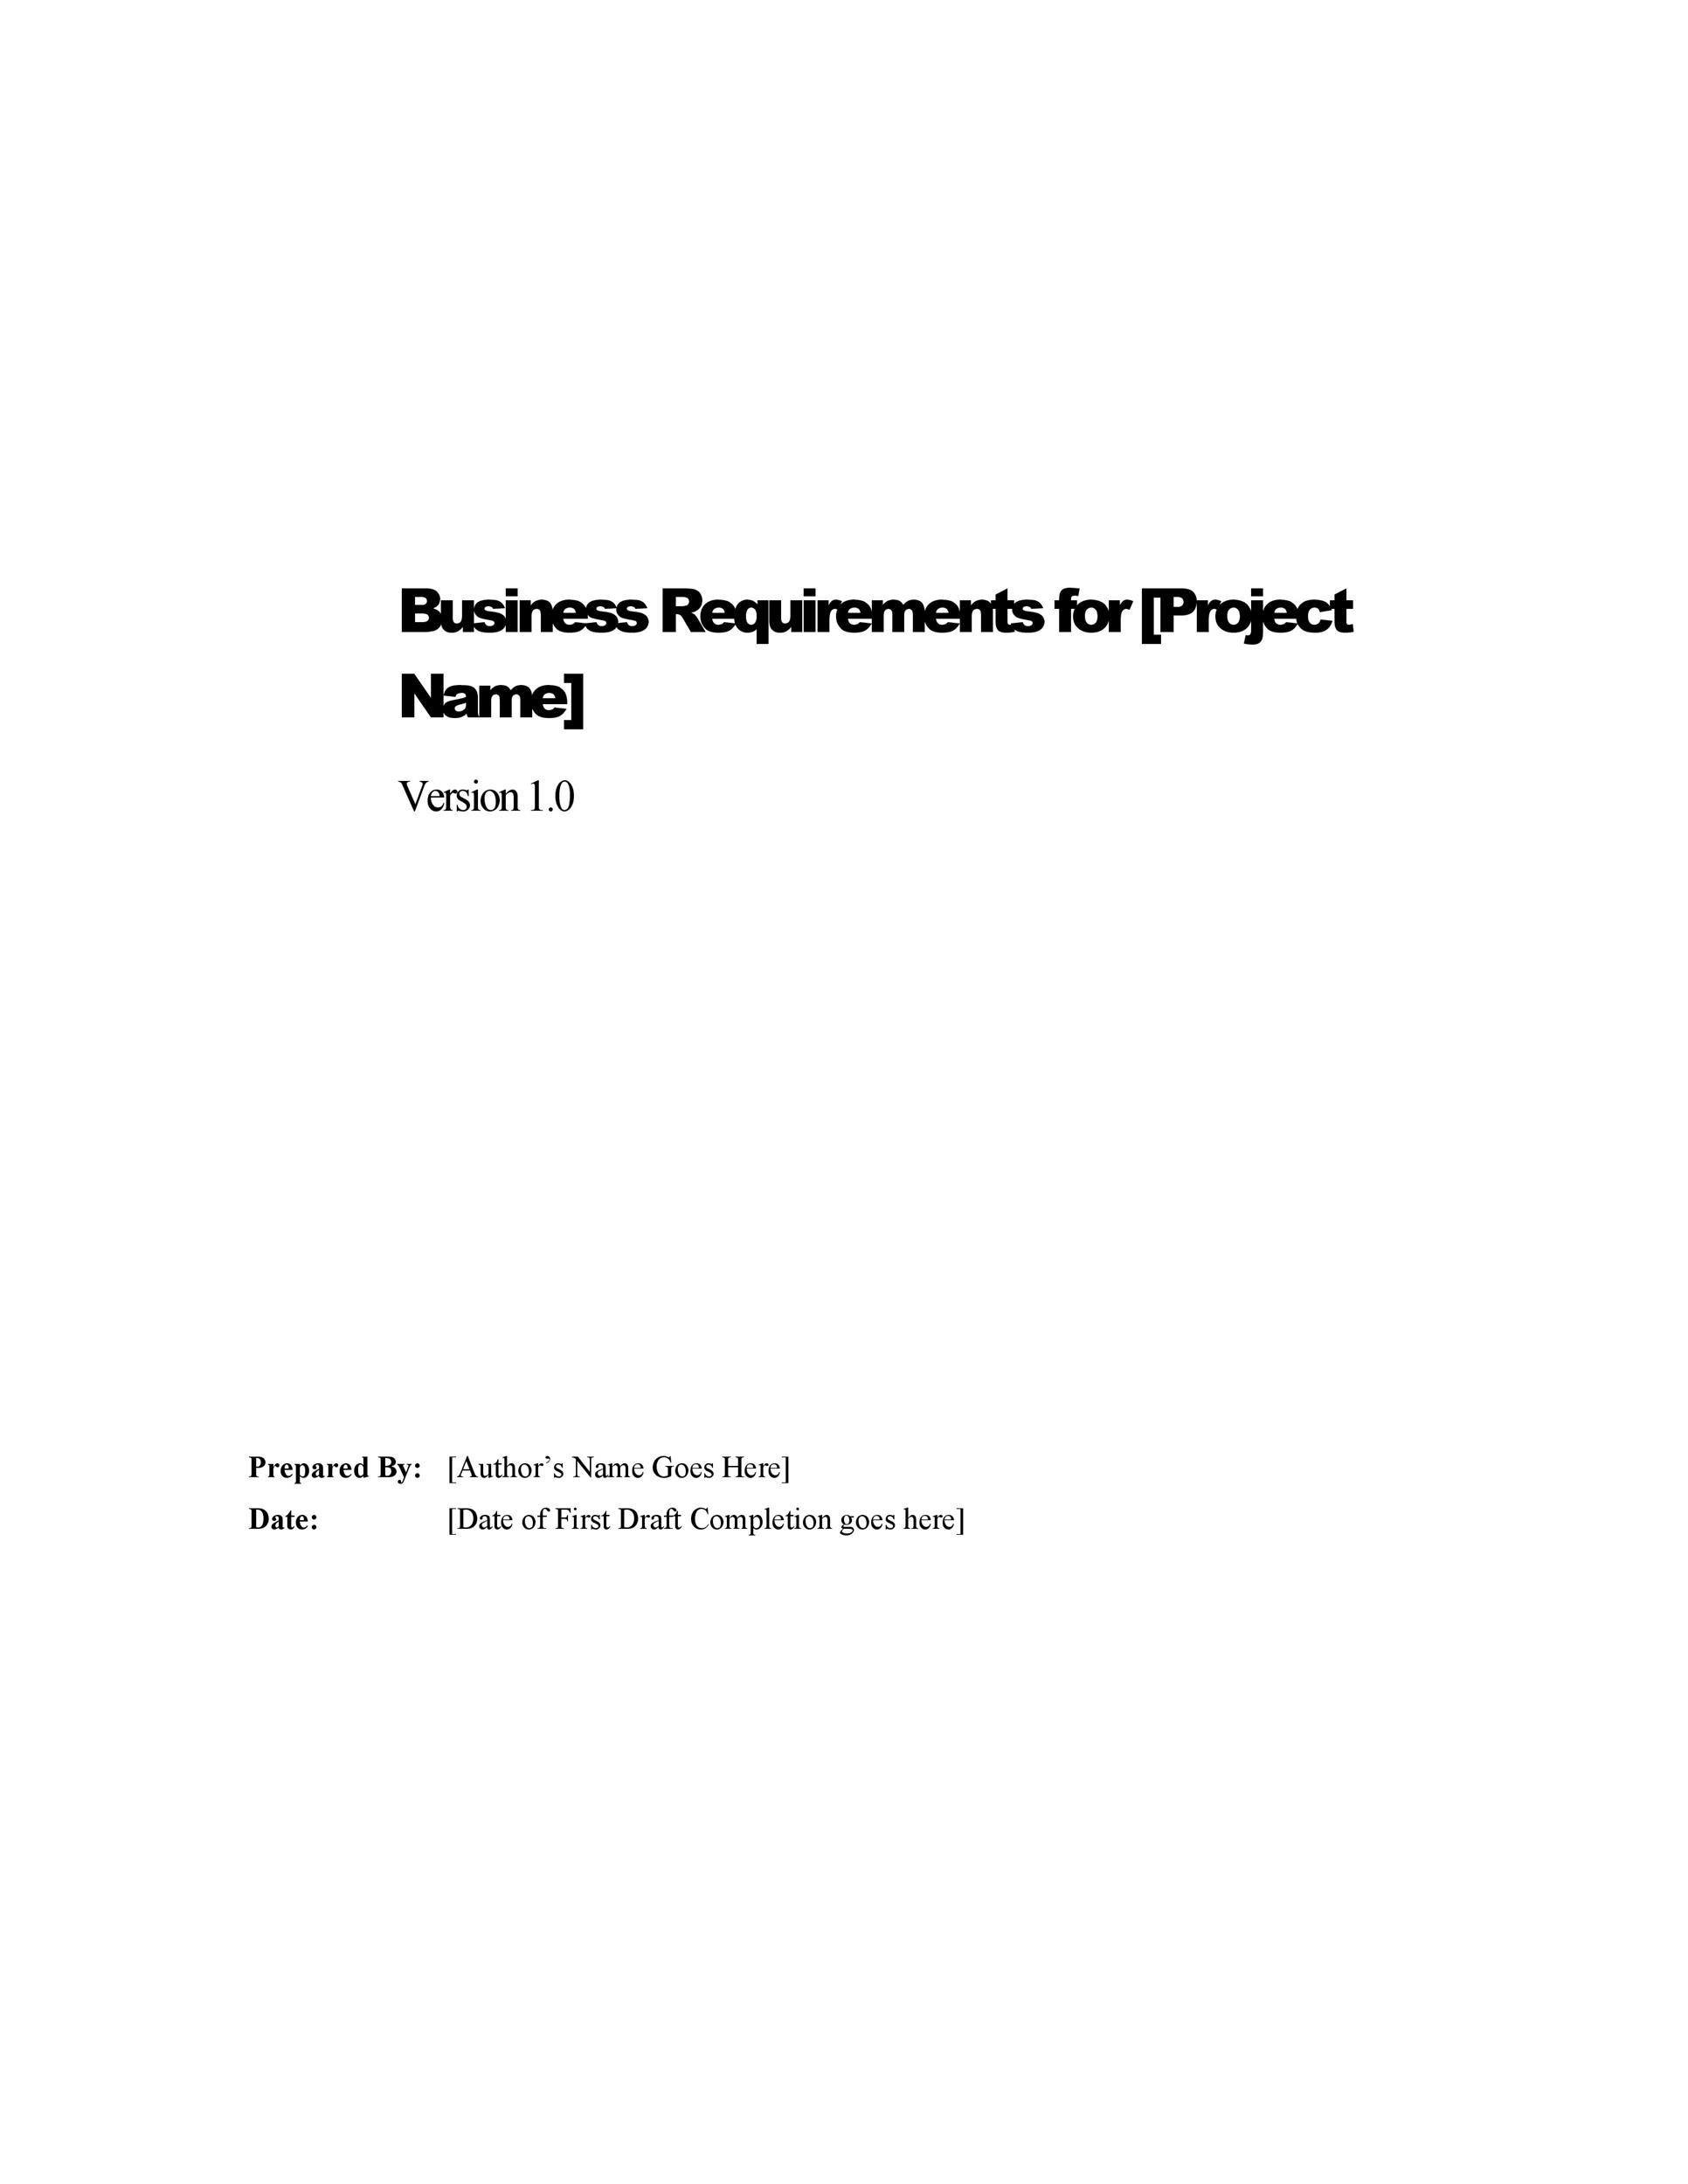 Free business requirements document template 26